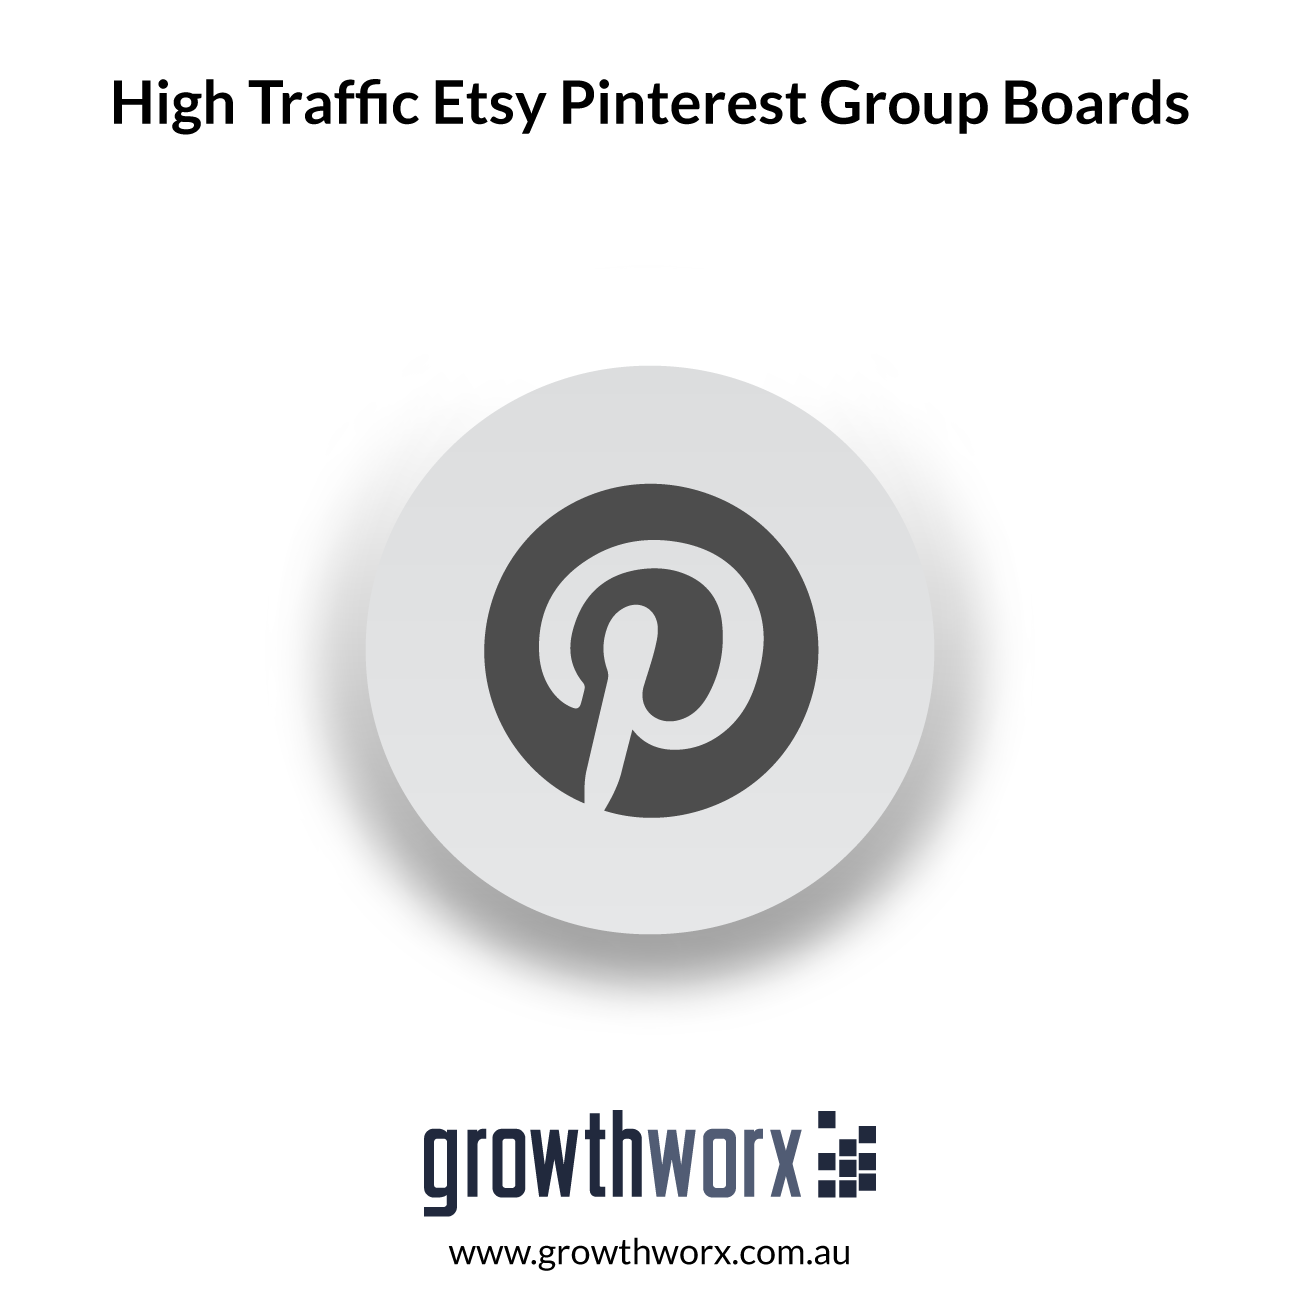 We will invite you to high traffic etsy pinterest group boards 1